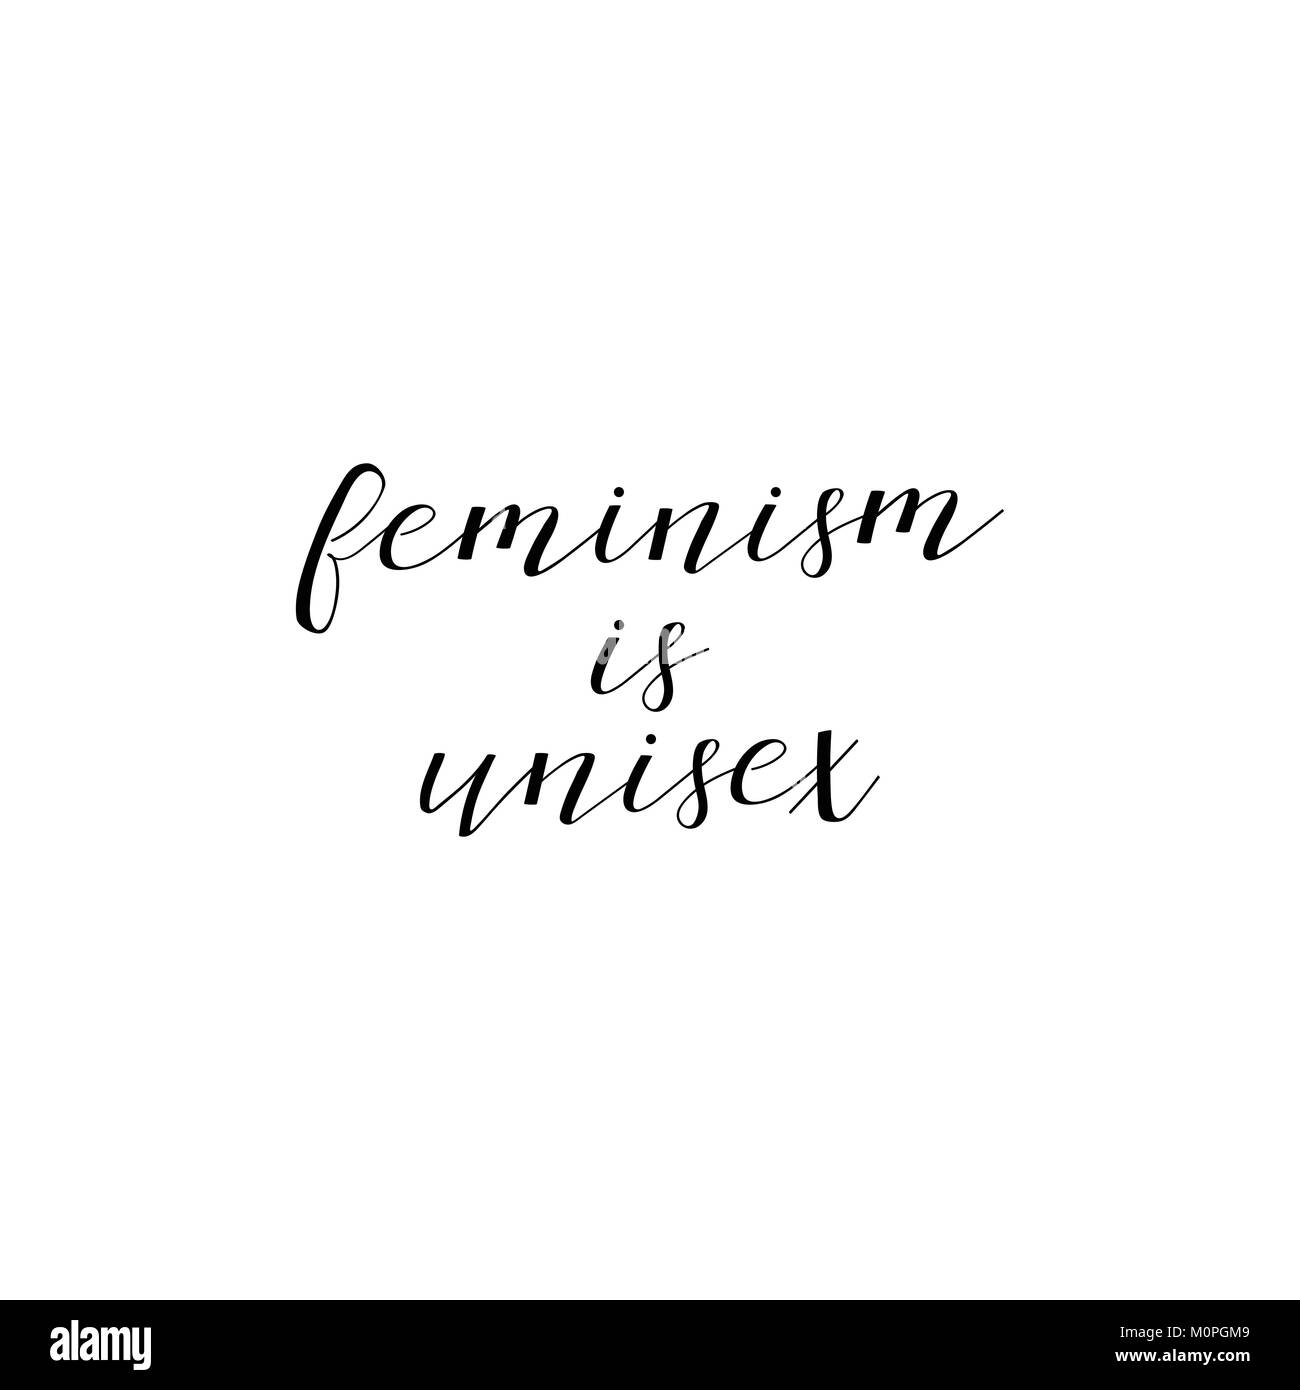 Feminism · feminist quotes coloring page feminism stock vector images